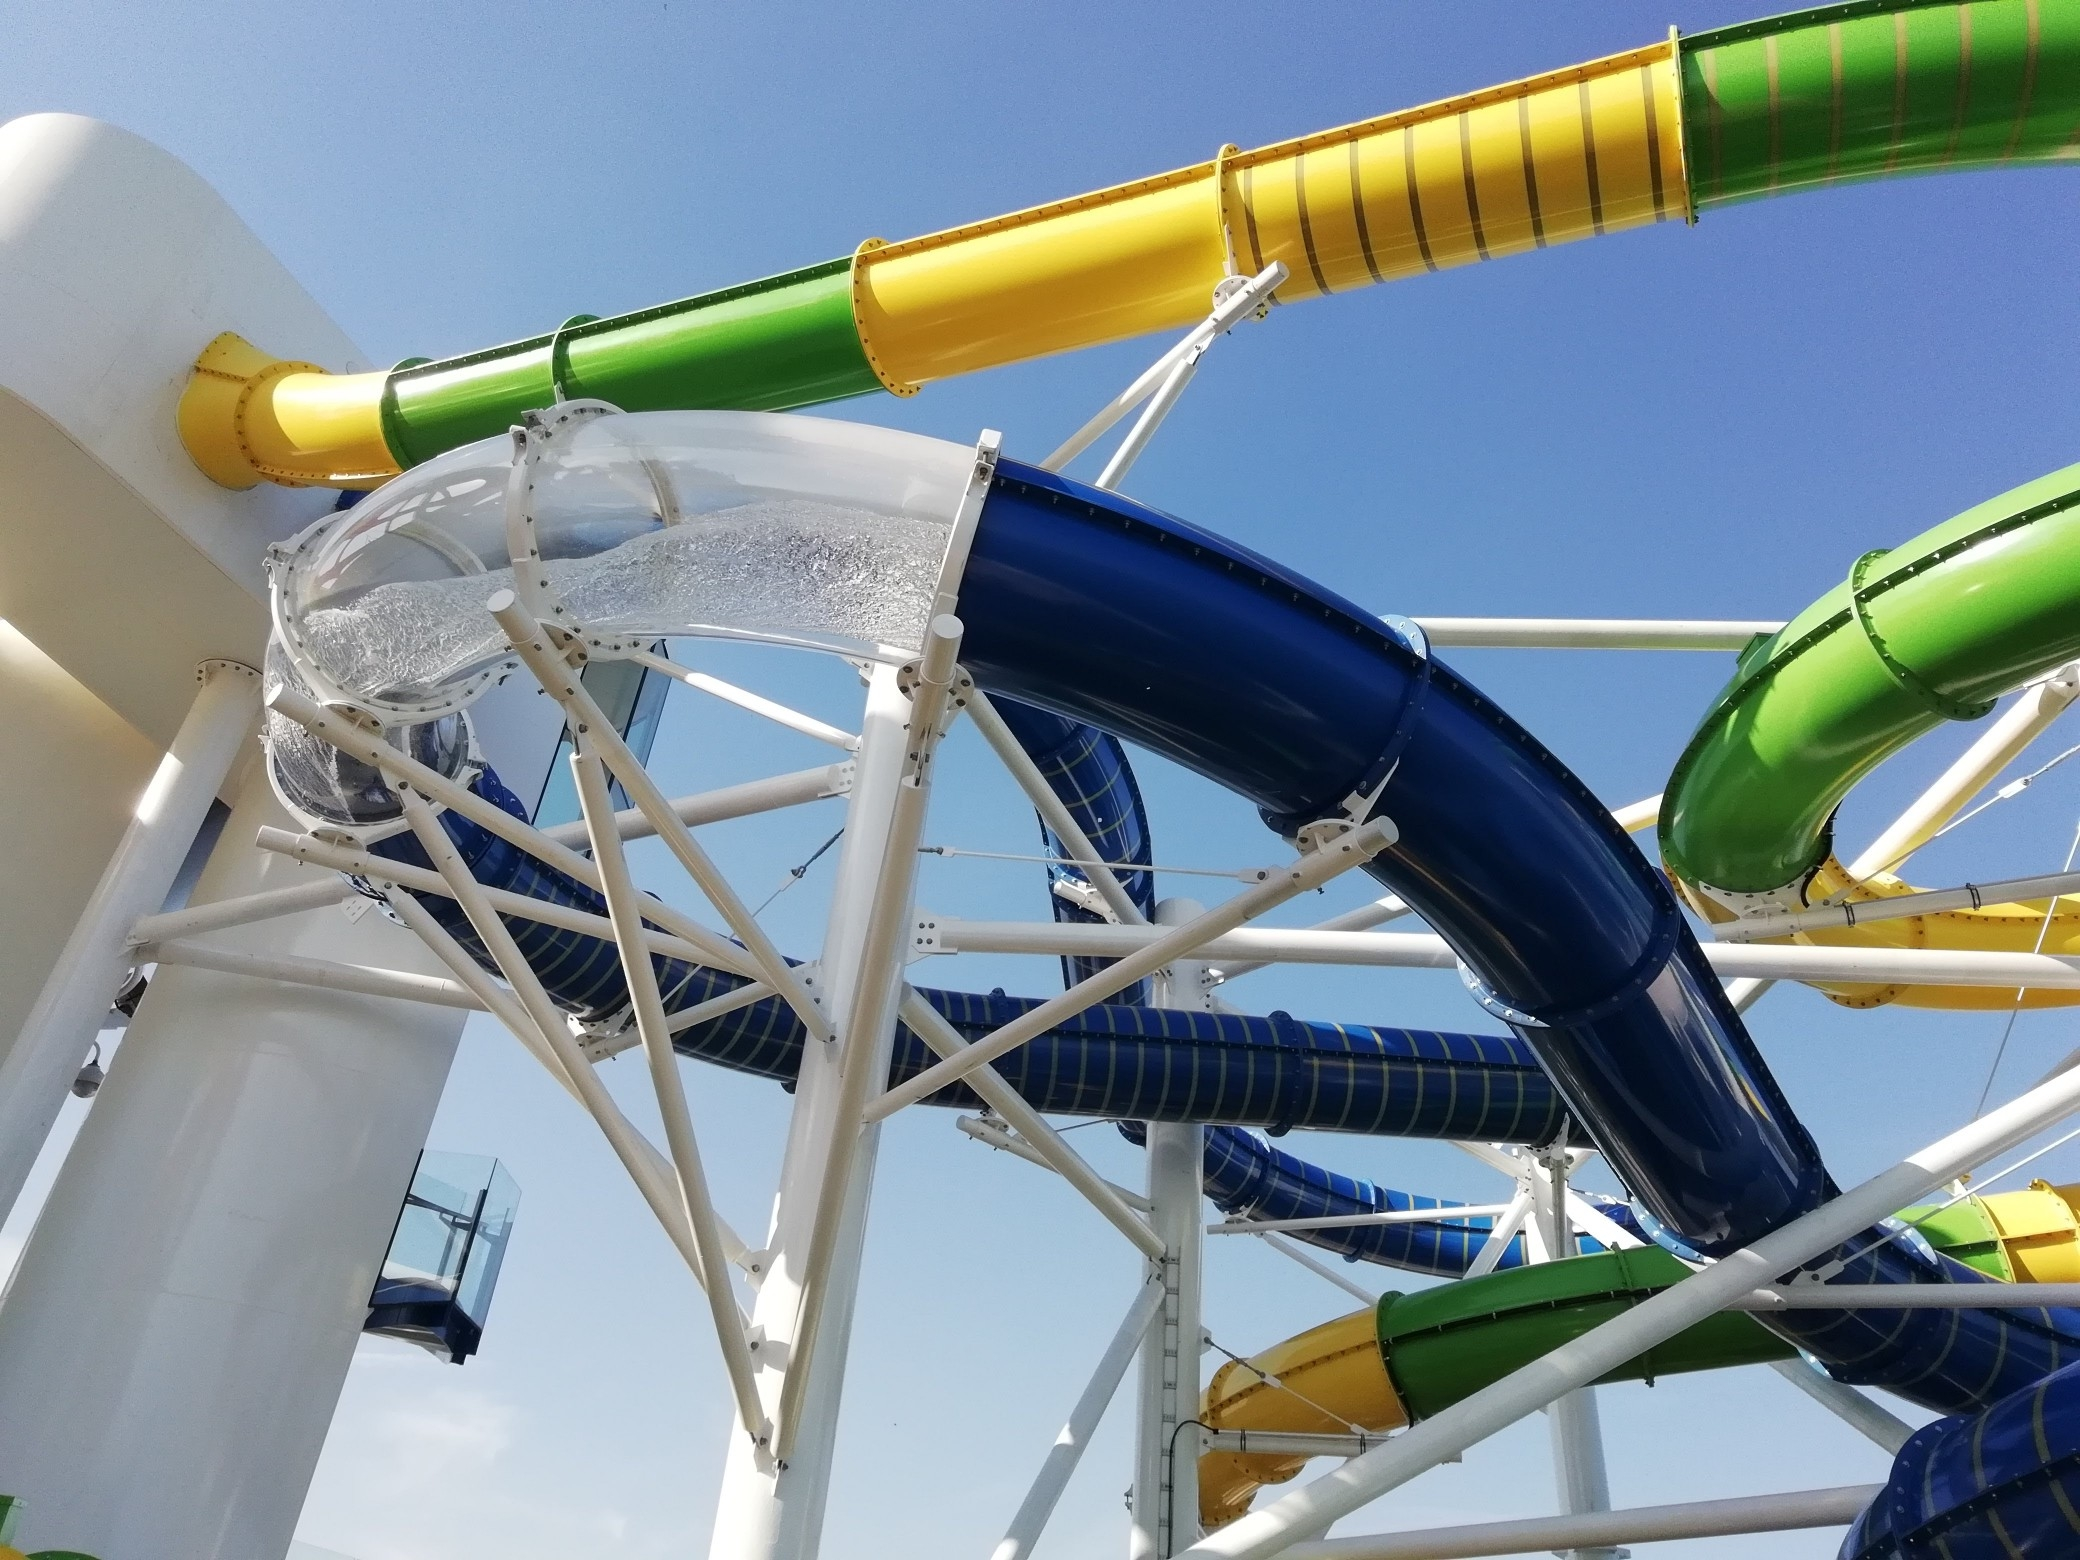 Sky Pad and The Perfect Storm on Independence of the Seas - Royal Caribbean (8)